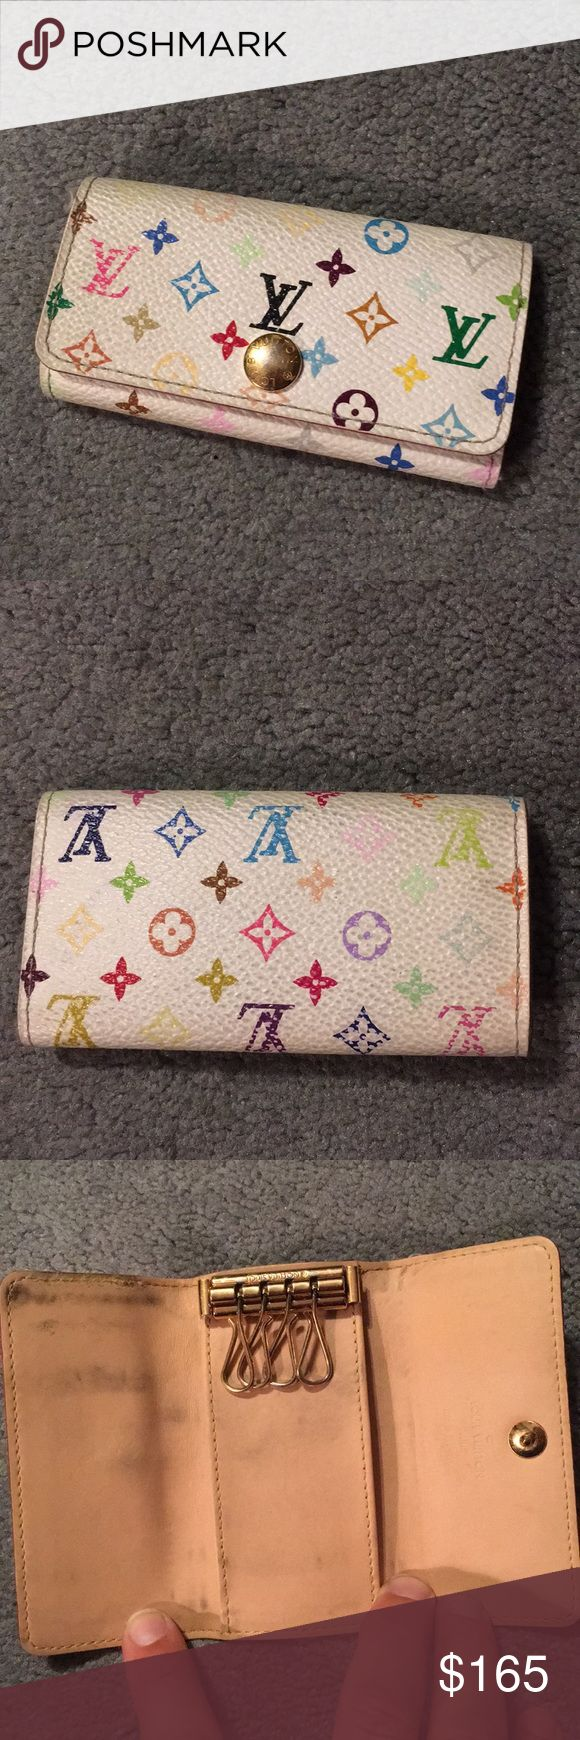 """LV multicolor 4 key holder Guaranteed authentic preowned white multicolor four key holder.  Shows some wear inside - shown in photos, please review carefully before purchasing.  Still looks great while carrying!!  Offers please use offer option only.  4 x2.25"""" Louis Vuitton Accessories Key & Card Holders"""